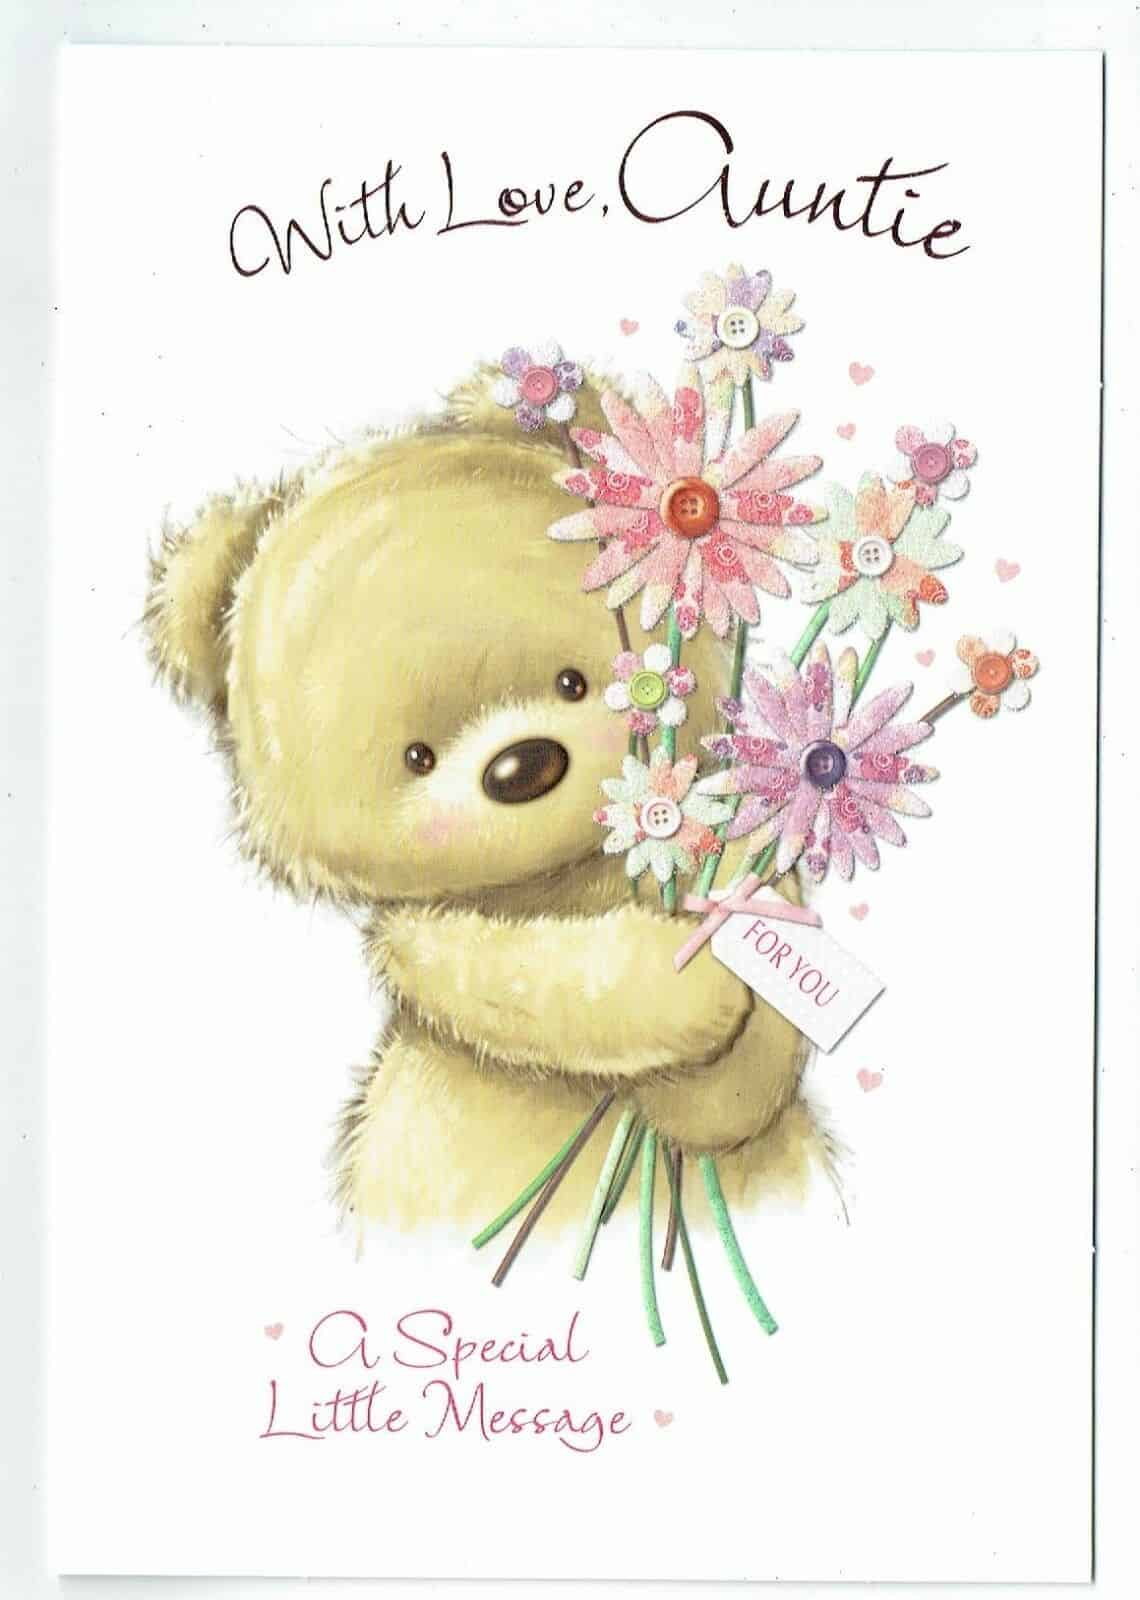 Auntie Birthday Card Embossed With Teddy Kitten Design